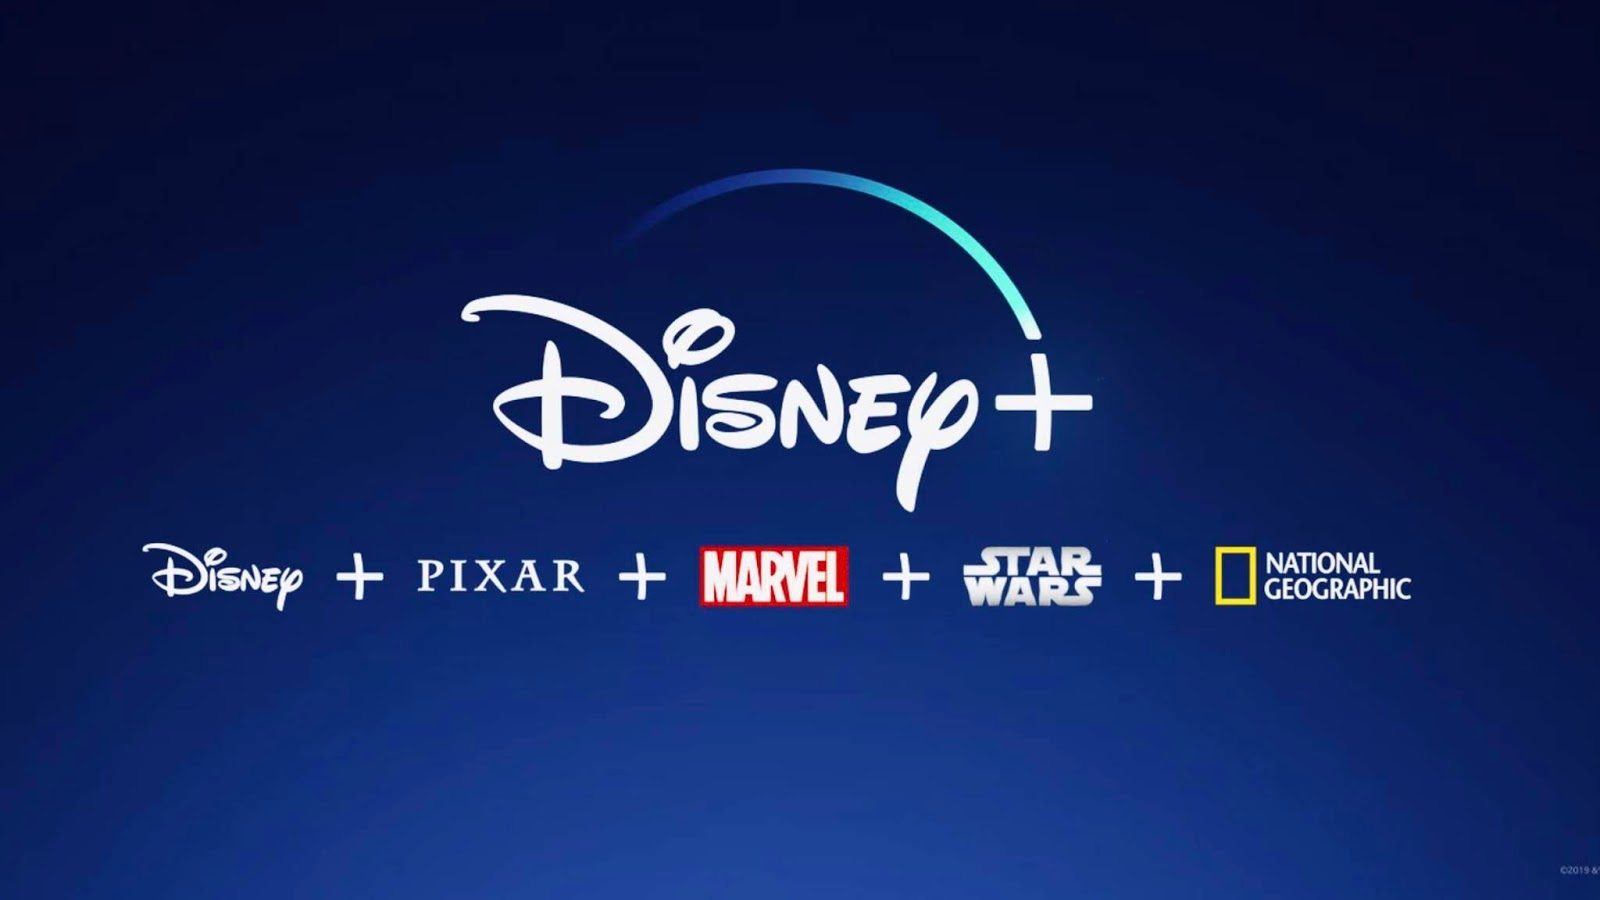 10 things to watch on Disney+ right now